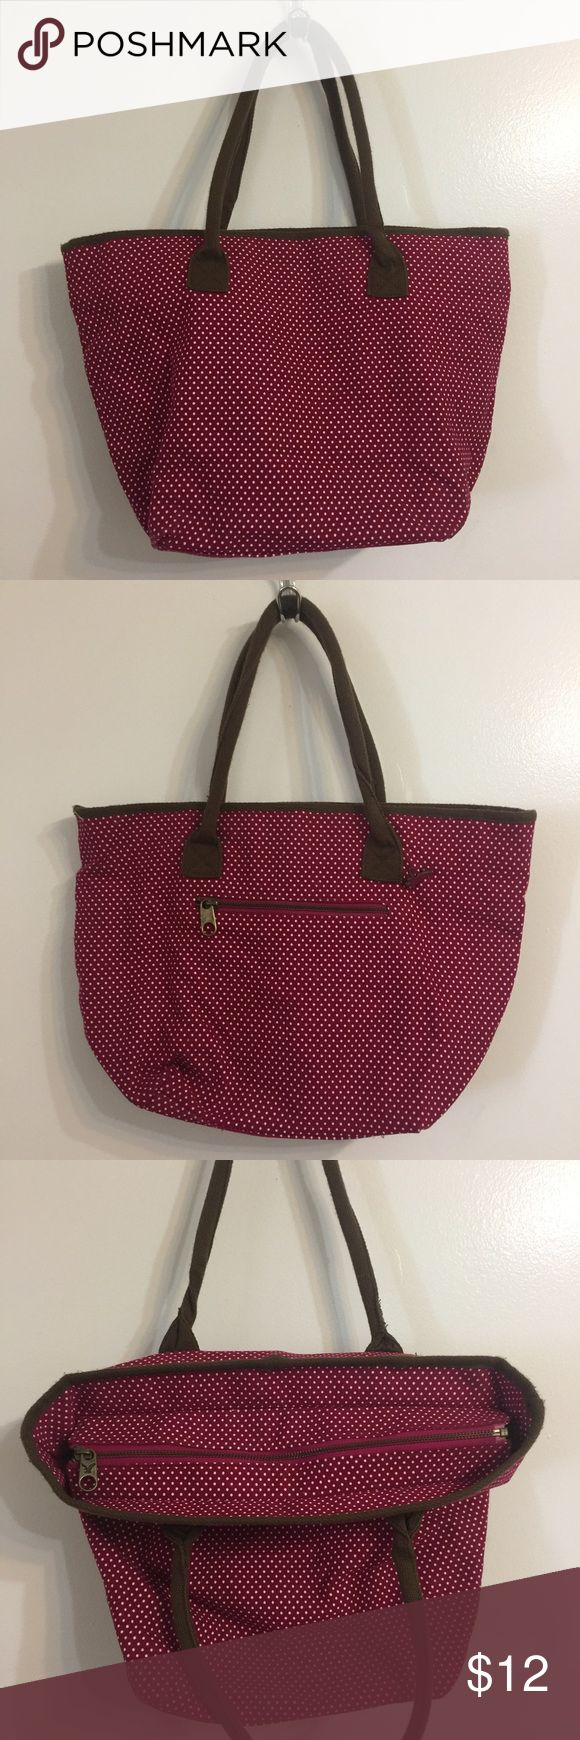 American Eagle Outfitters Polka Dot Purse AEO Polka Dot Purse, Magenta 💗, inner pocket, outer pocket, eagle pin, sturdy & spacious all zippers work great 👍🏼 American Eagle Outfitters Bags Shoulder Bags